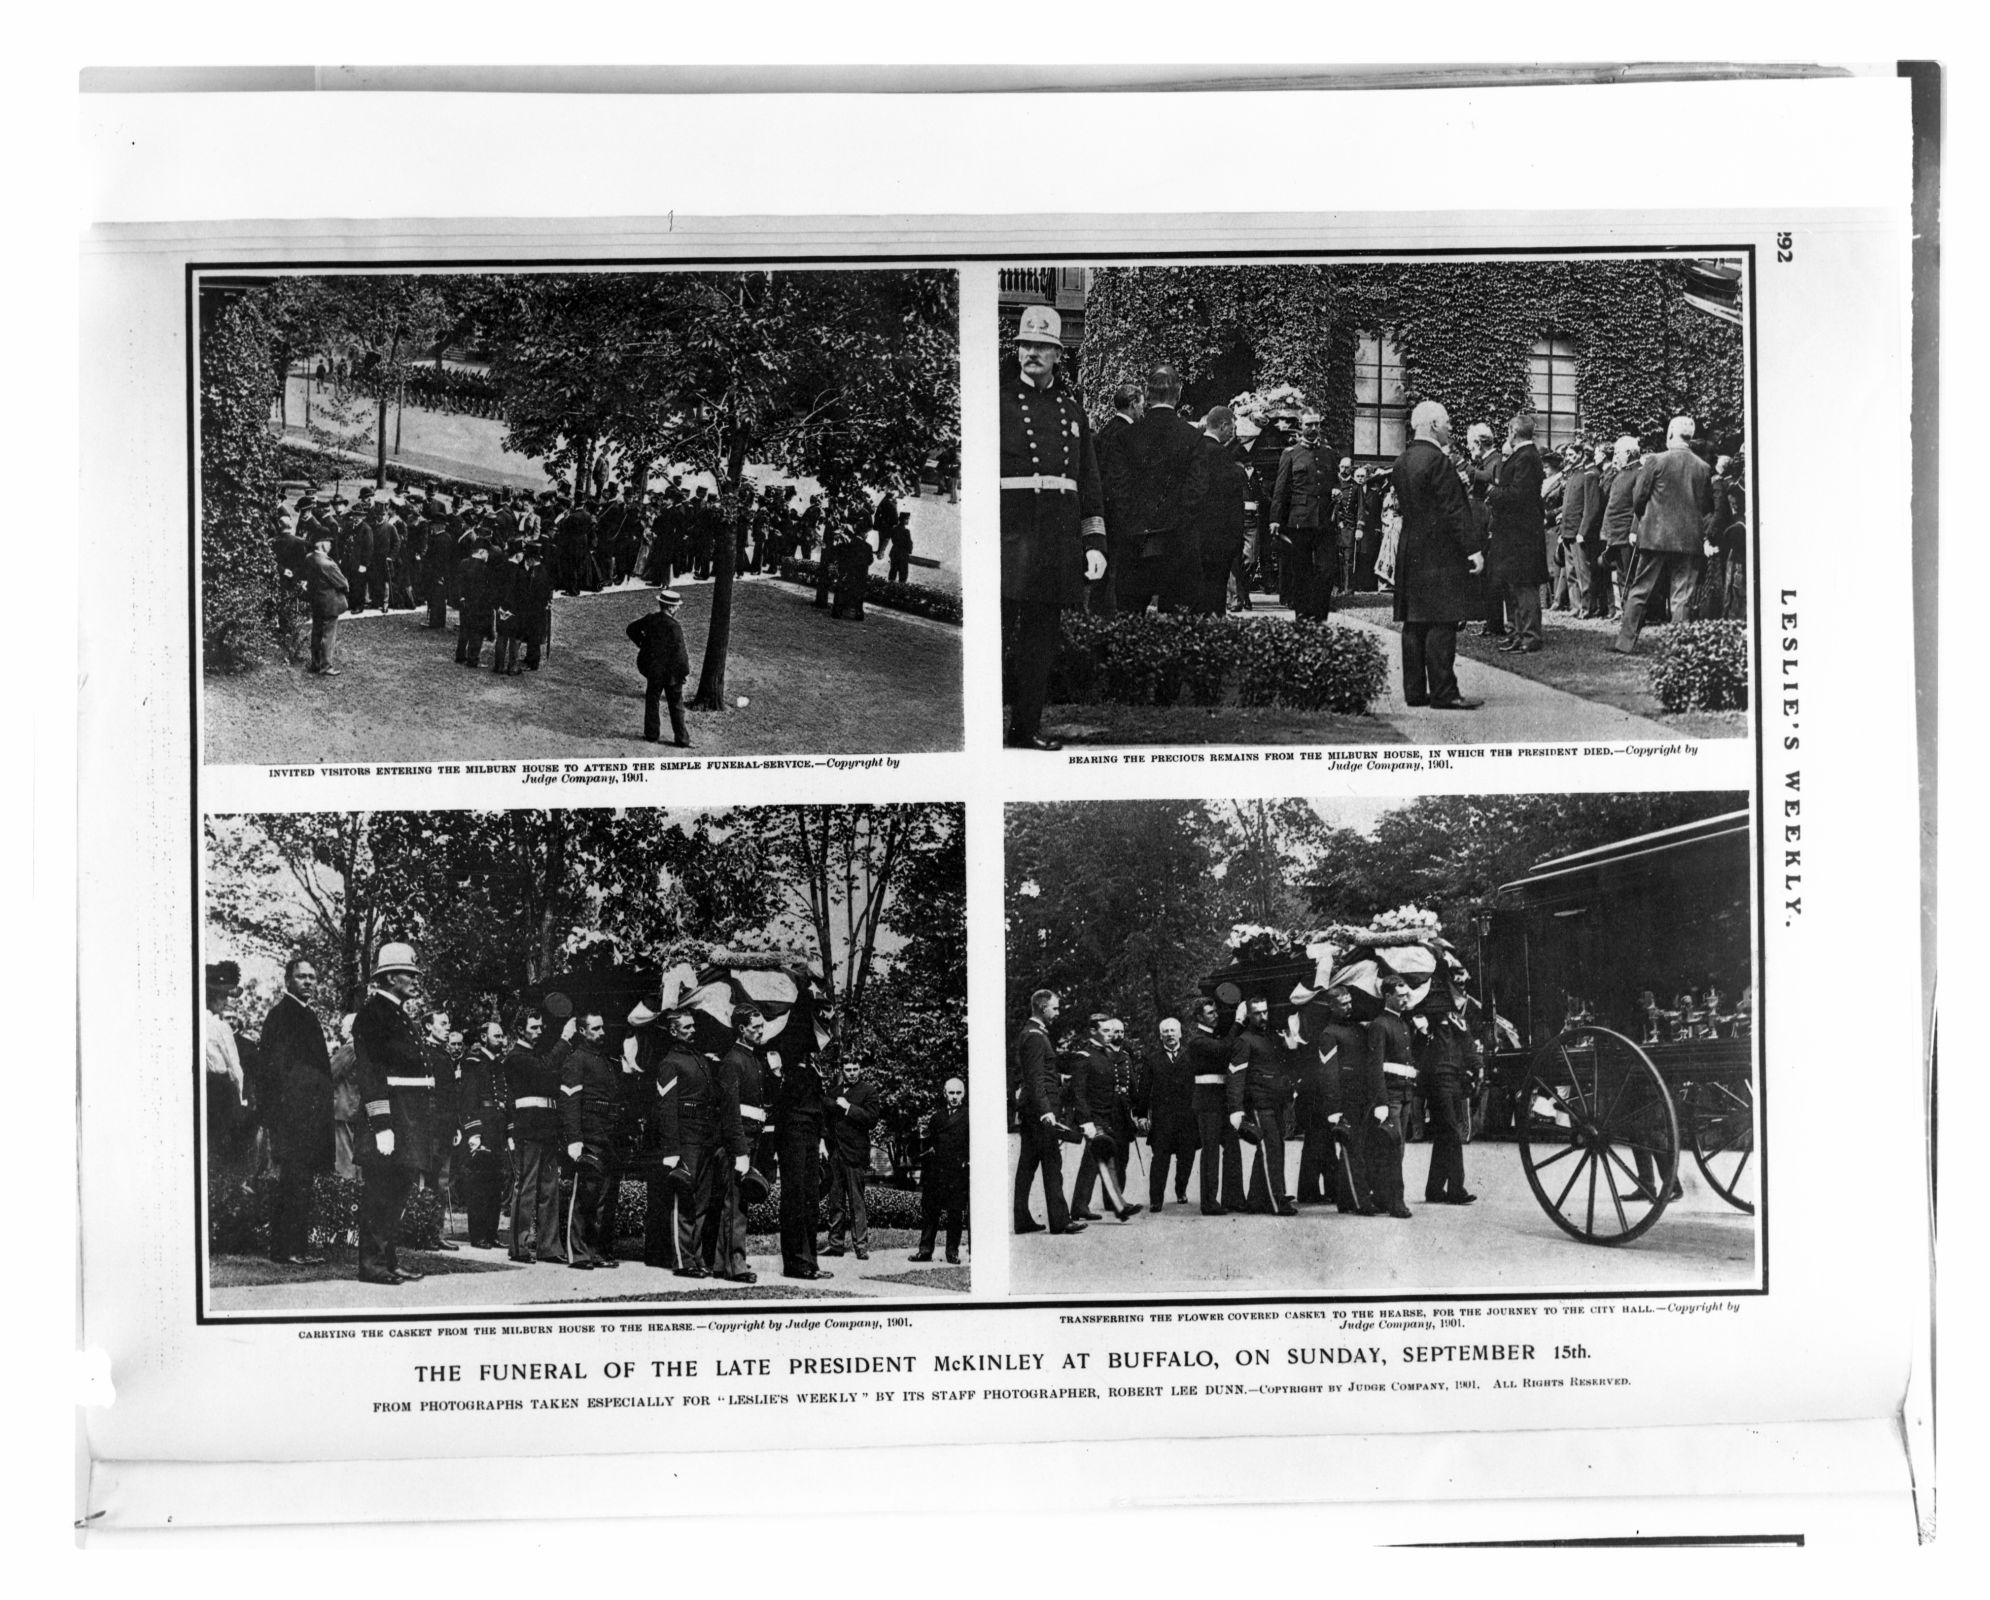 Funeral of McKinley